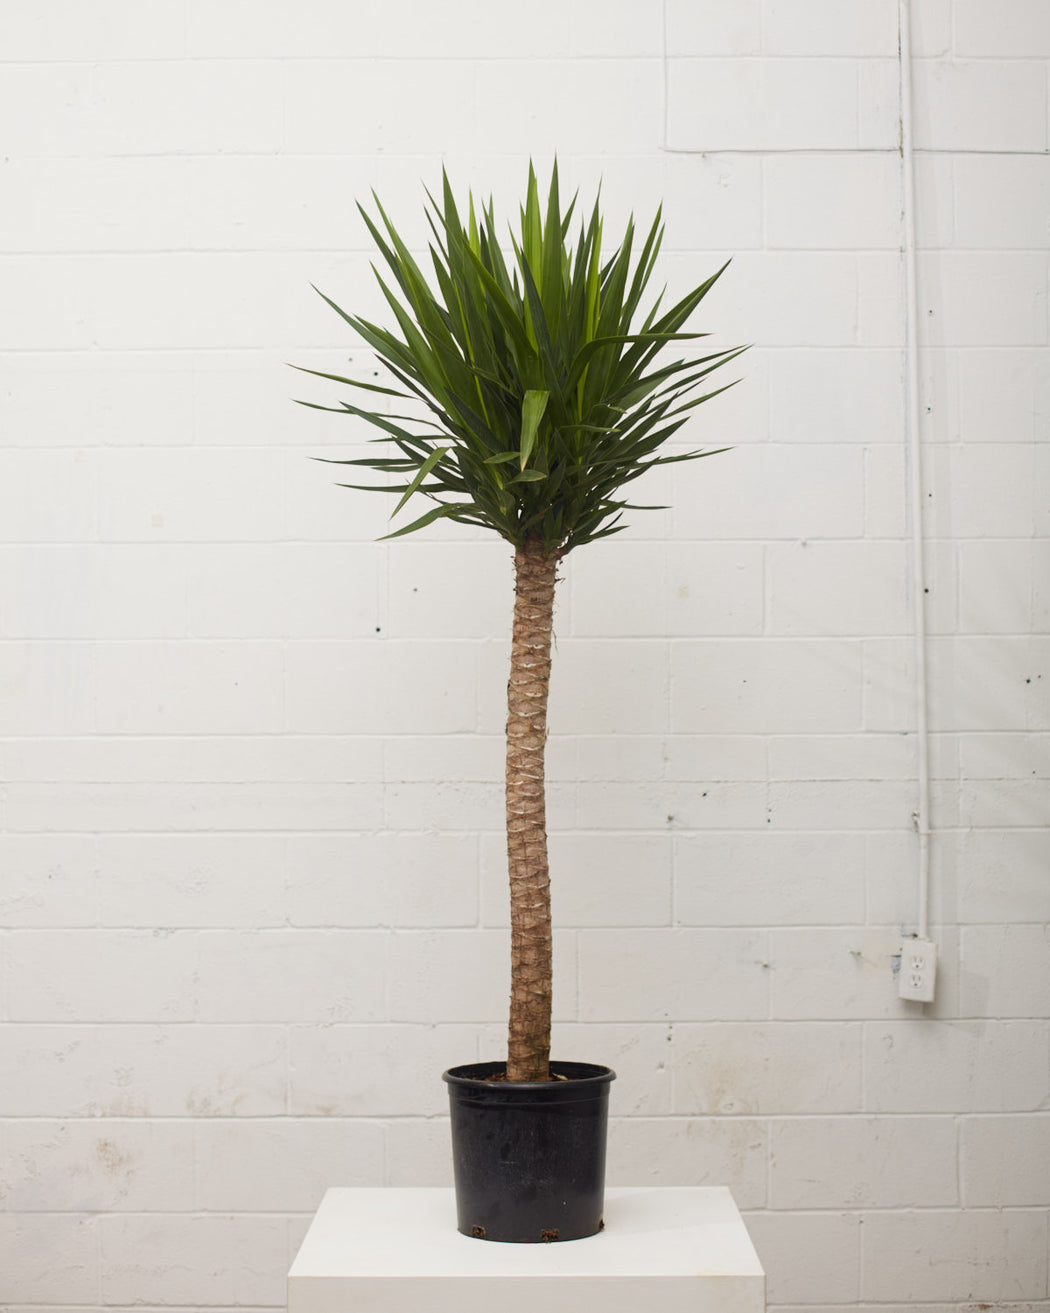 "DRACAENA YUCCA 12"" Grower Pot (6' tall)"